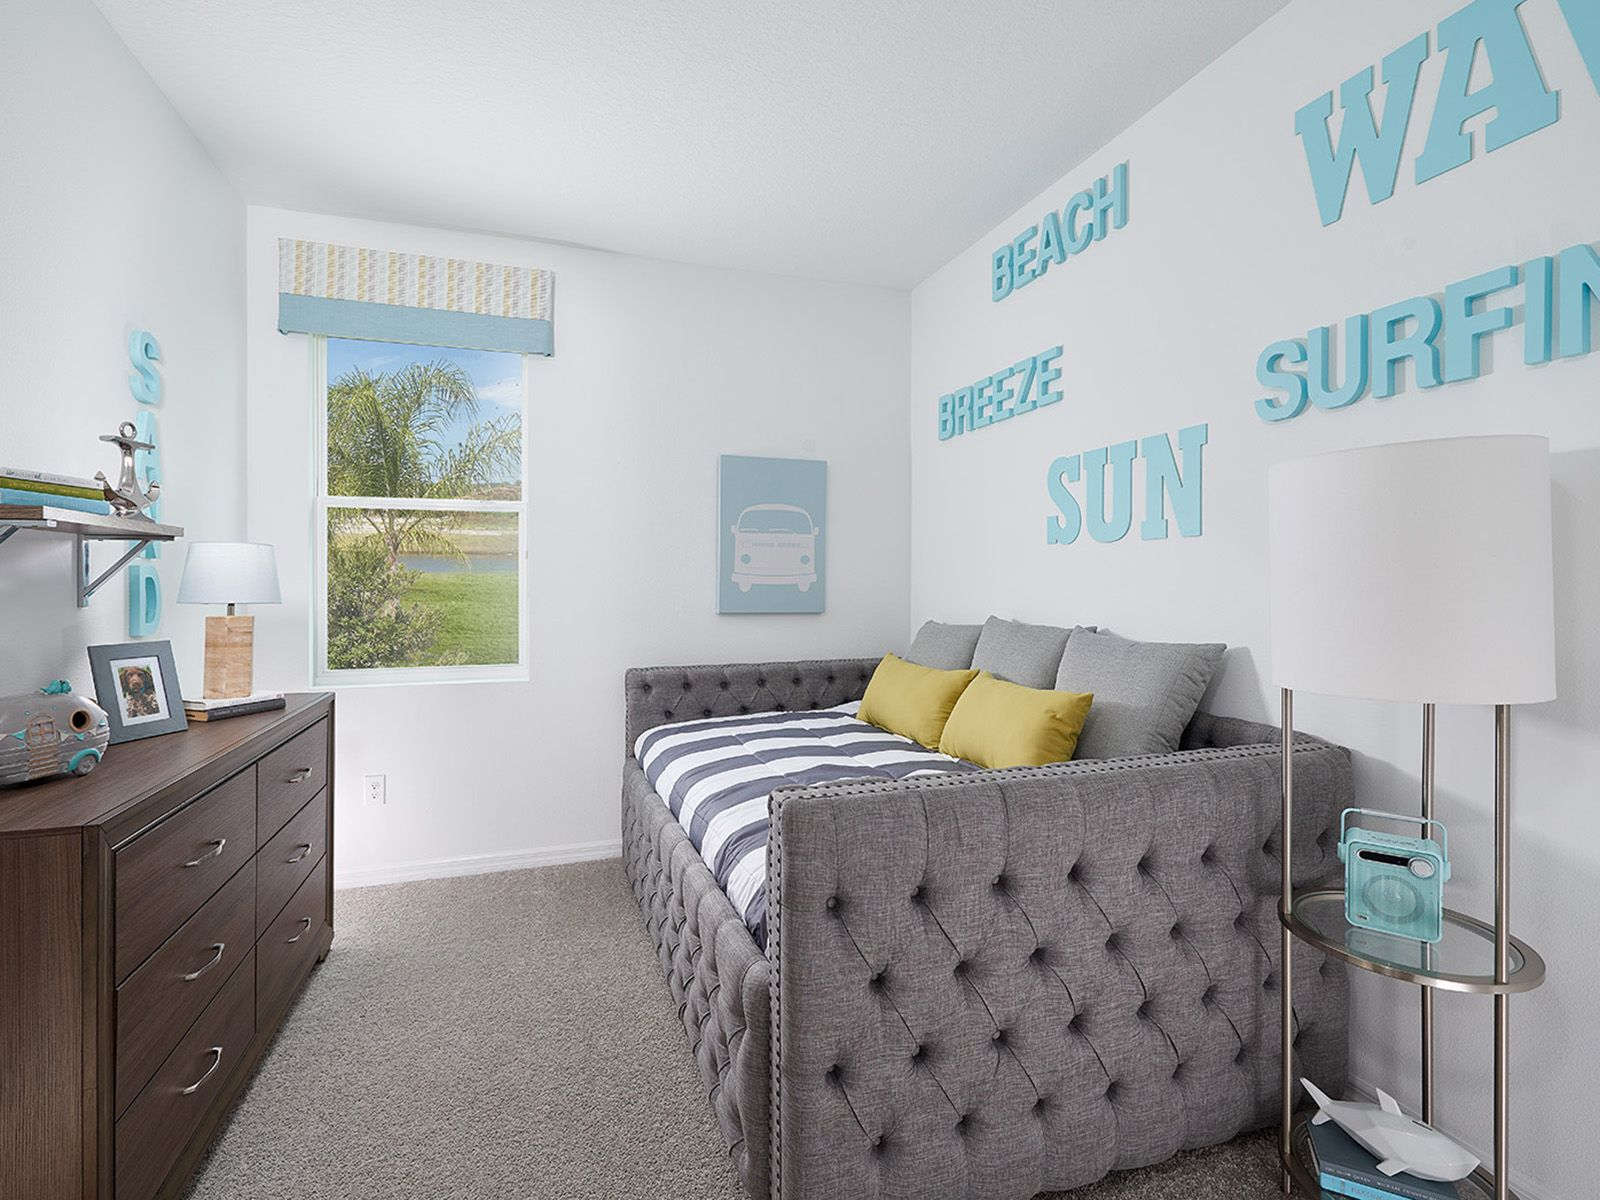 Bedroom featured in the Poinciana - Meritage Homes  By Crown Community Development